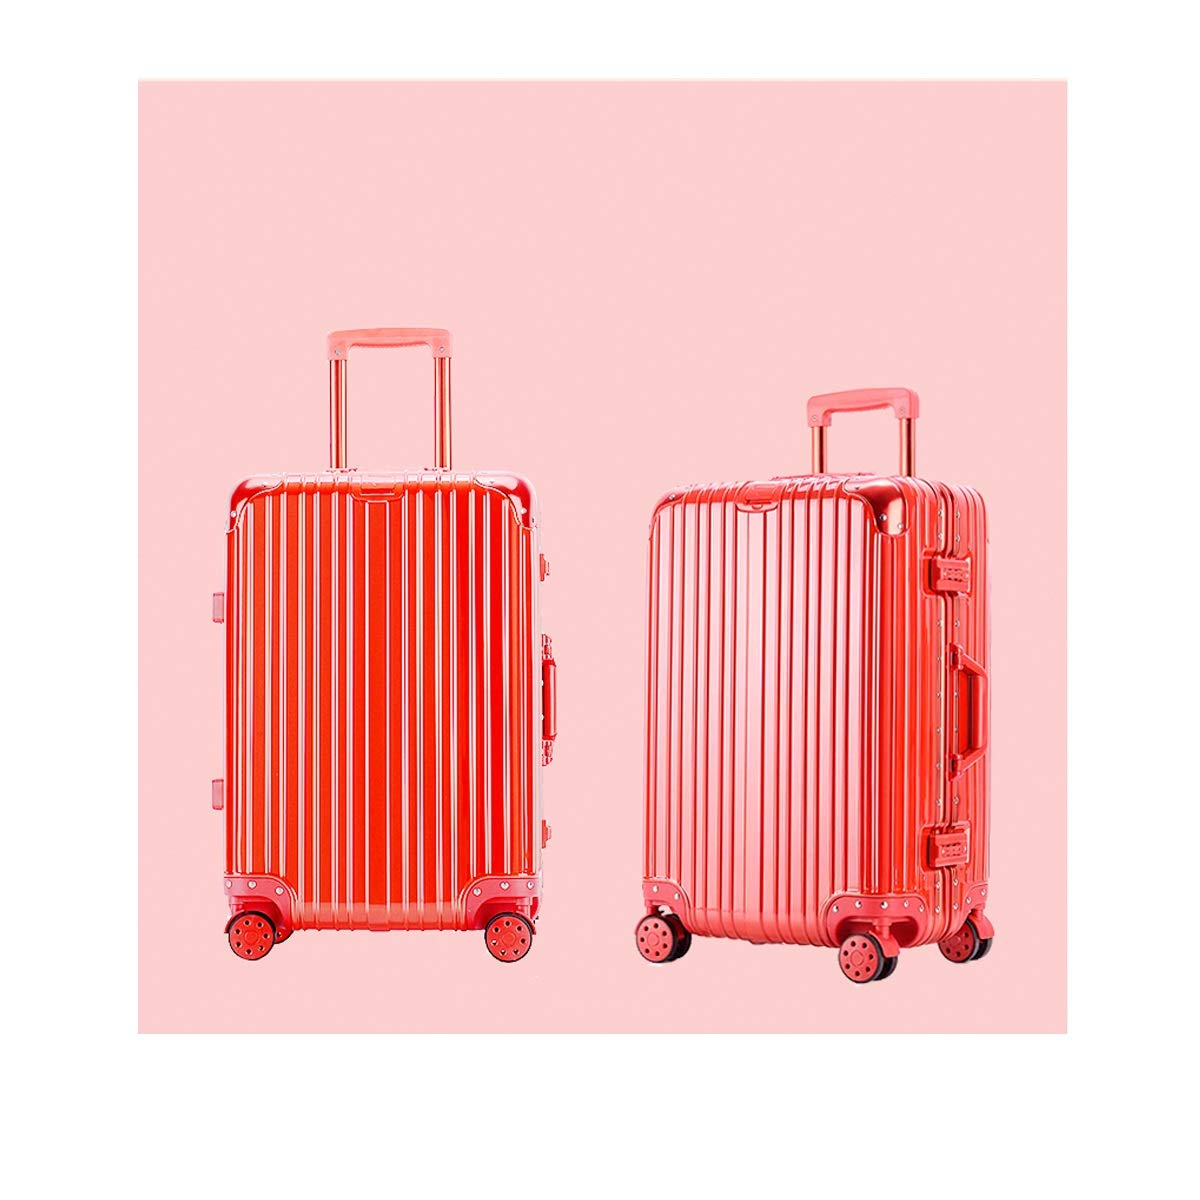 Travel Organizer Carry-on Luggage Huijunwenti Hard Rotating Suitcase Color : Red, Size : 20 Silver The Latest Style Trolley case Simple 20//24 inch Best Gift